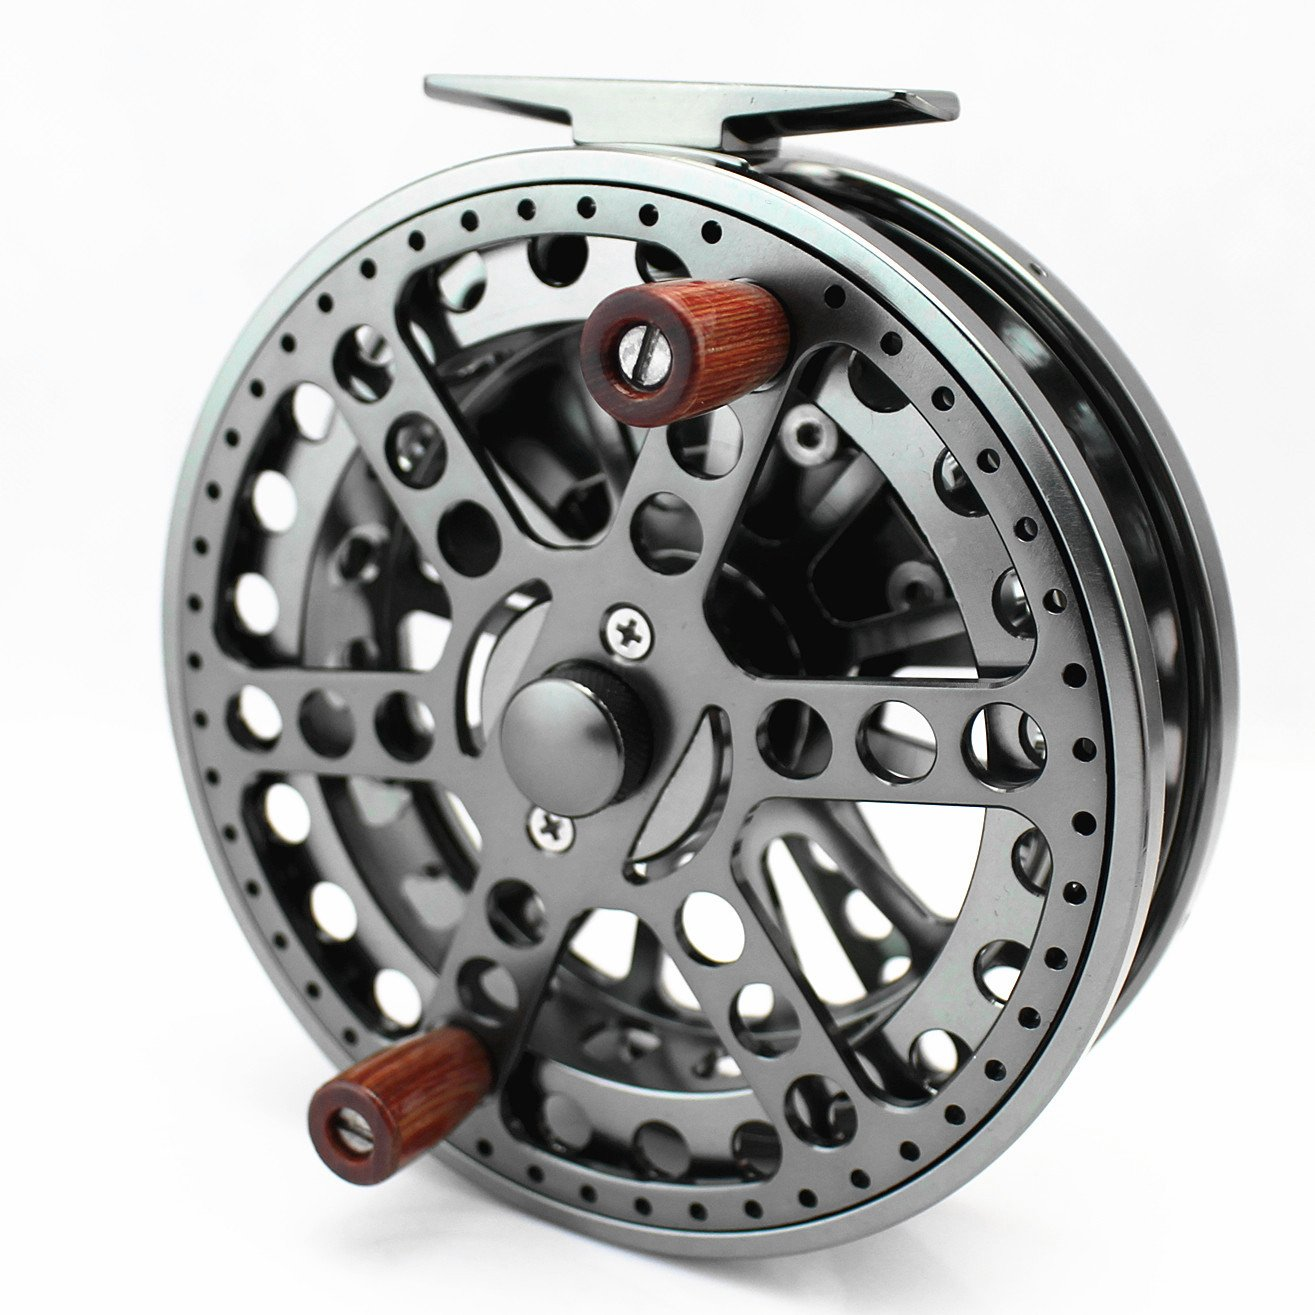 CENTREPIN Float Reel Center PIN Trotting Reel 120mm 4 3 4 INCHES CNC MACHINED Aluminum Salmon Steelhead Fishing